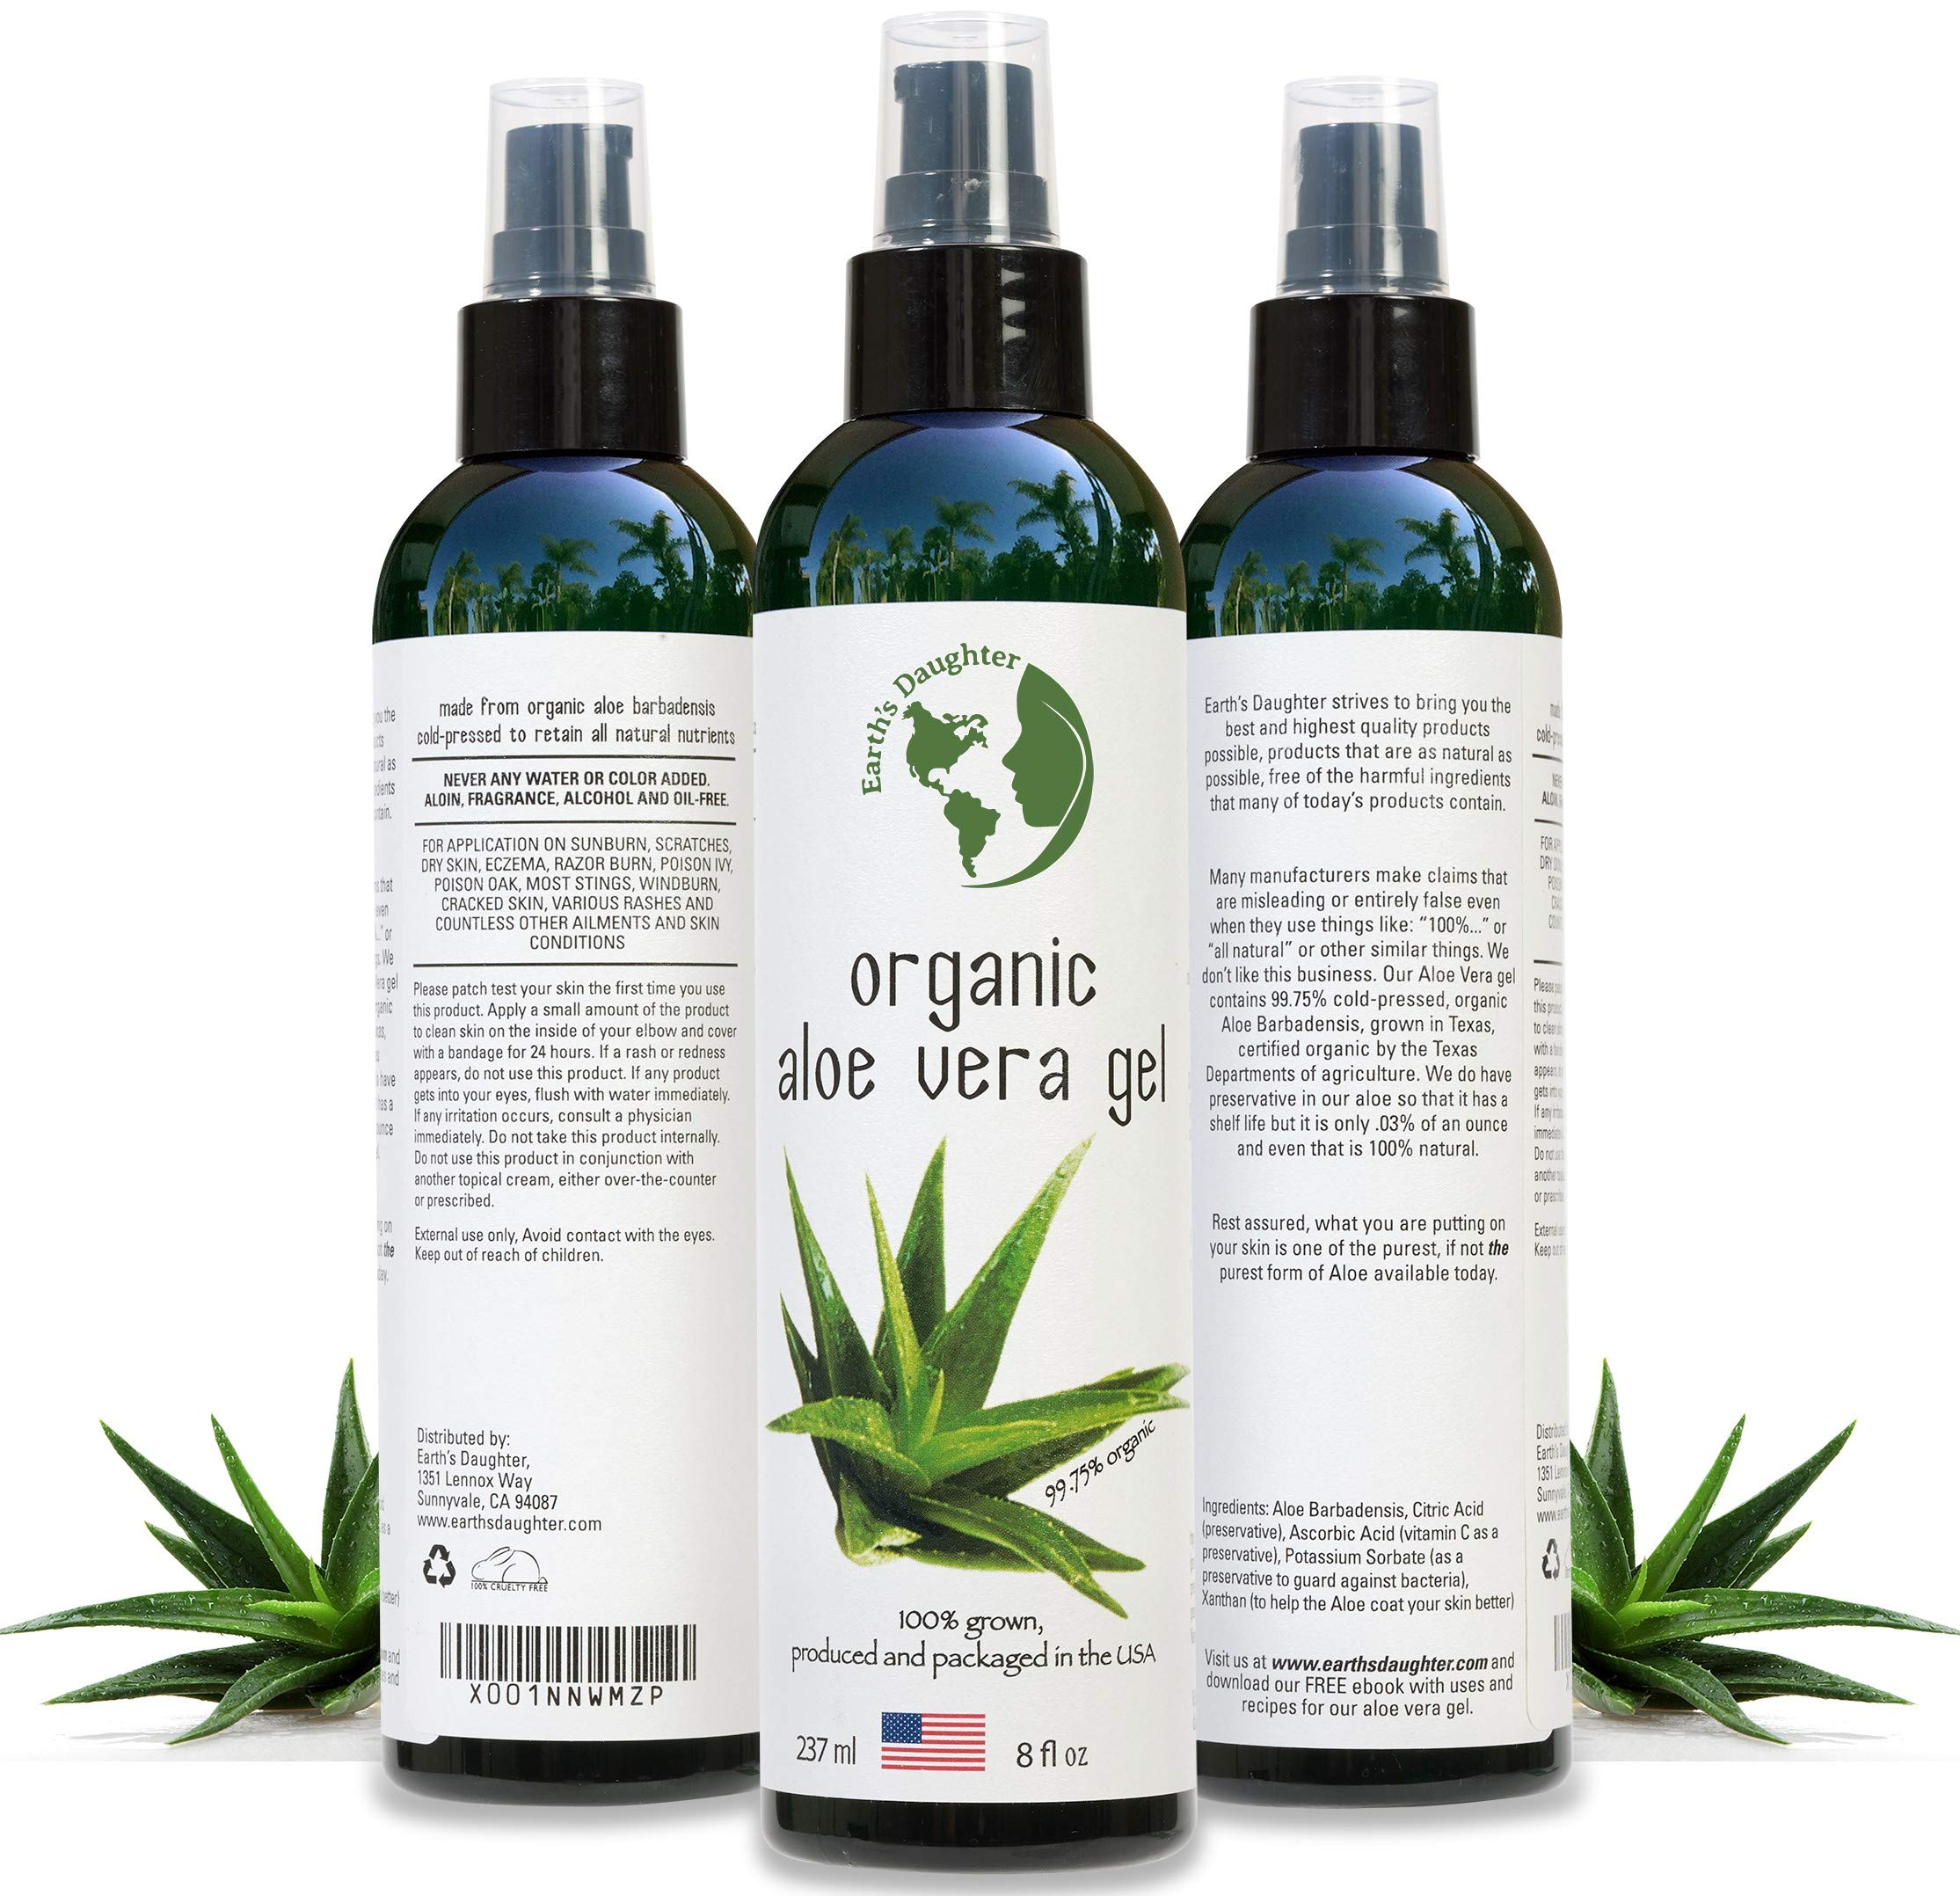 Organic Aloe Vera Gel from 100% Pure and Natural Cold Pressed Aloe - Great for Face - Hair - Acne - Sunburn - Bug Bites - Rashes - Eczema - 8 oz. by Earth's Daughter